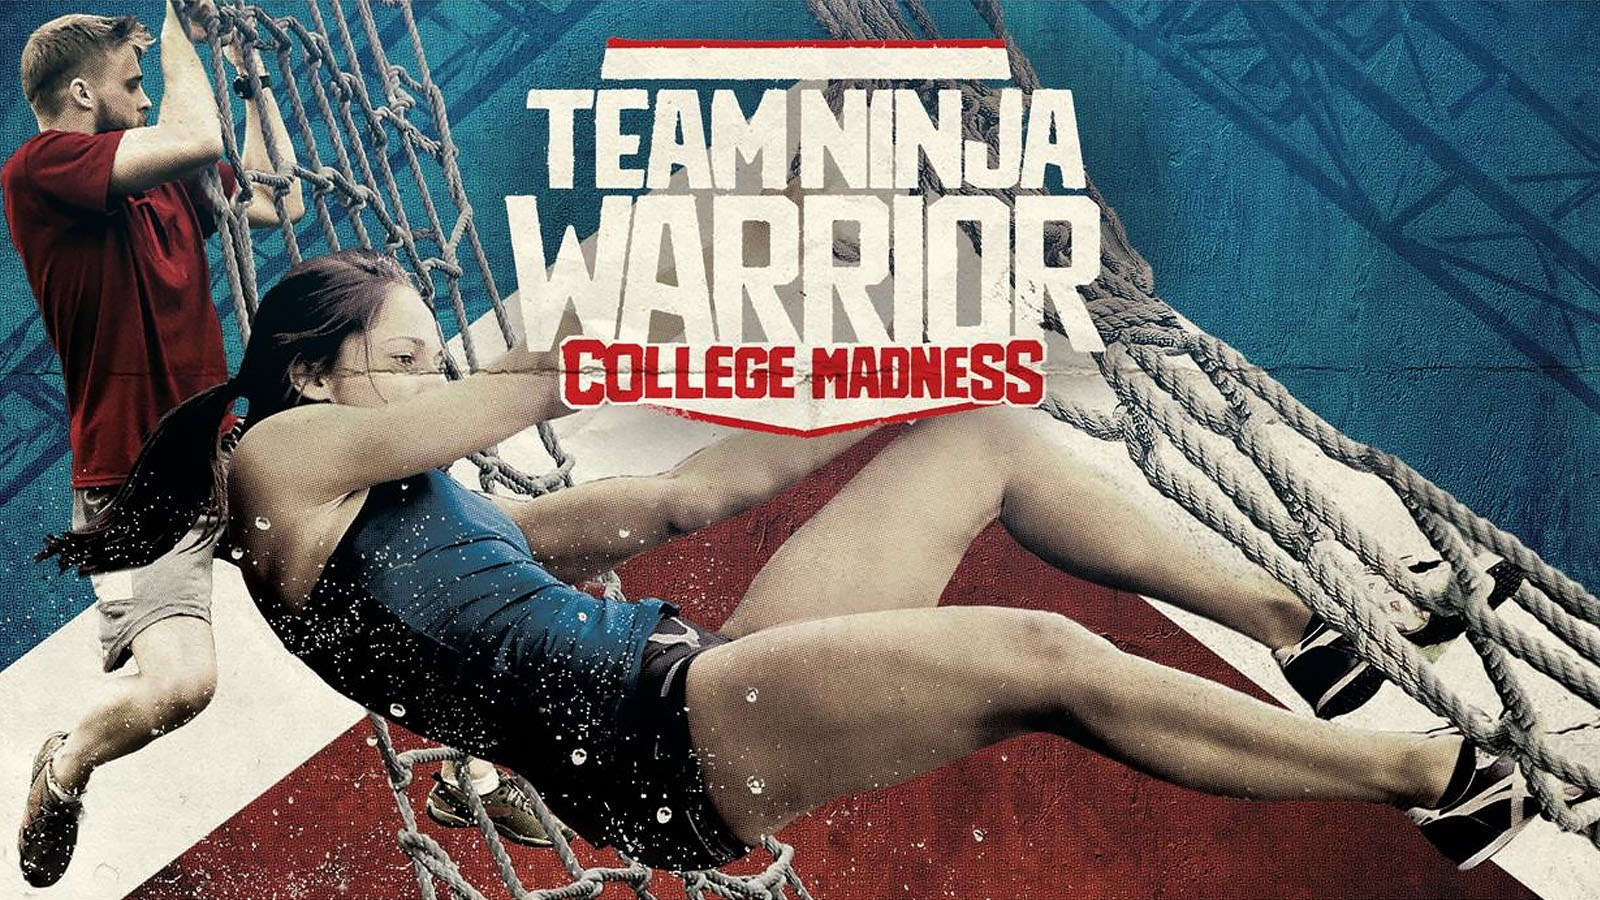 Team Ninja Warrior: College Madness